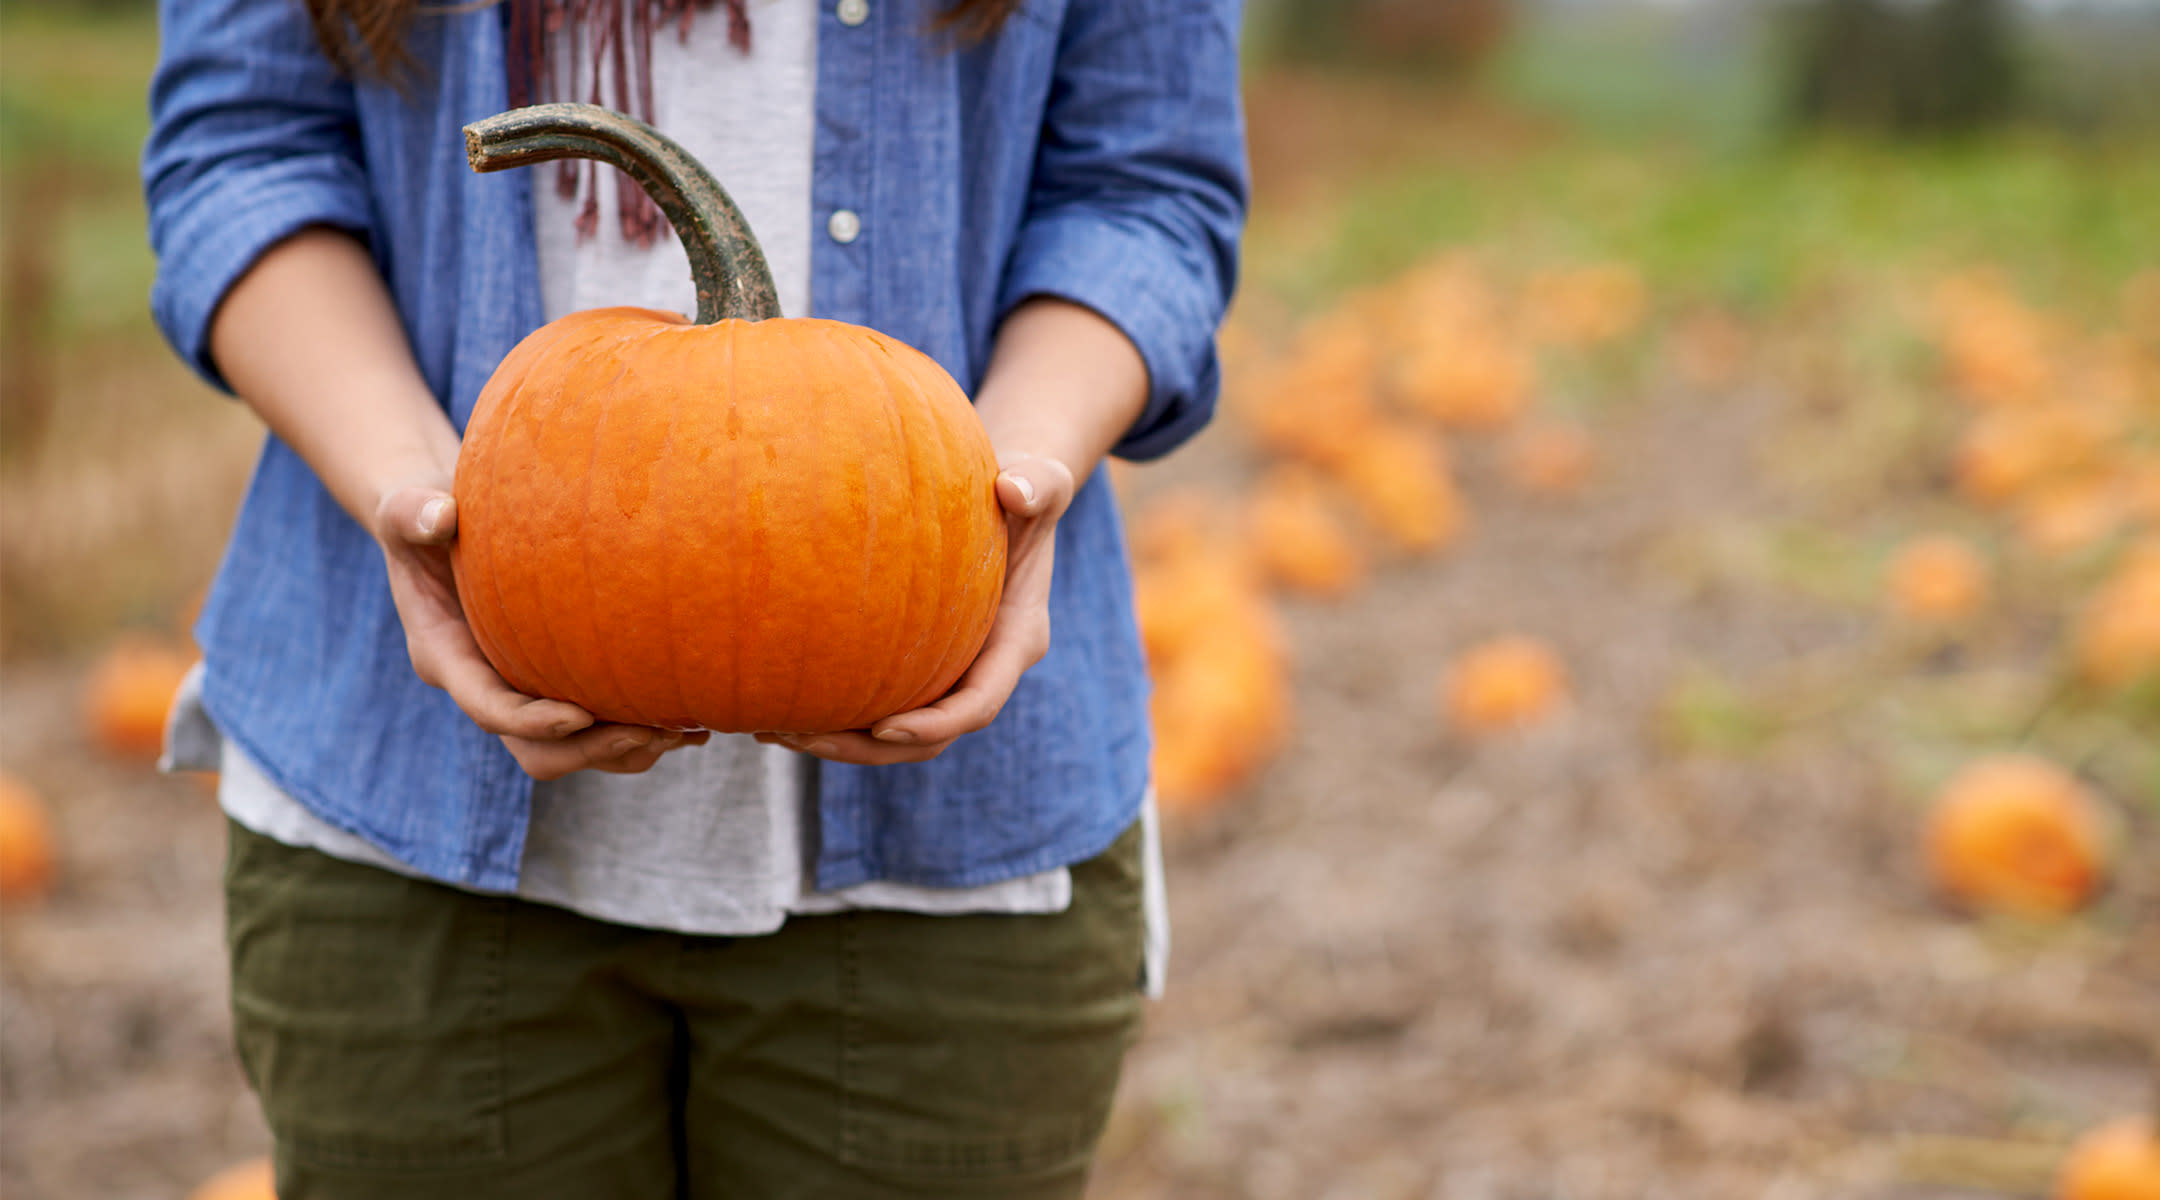 Woman holding pumpkin in front of her stomach